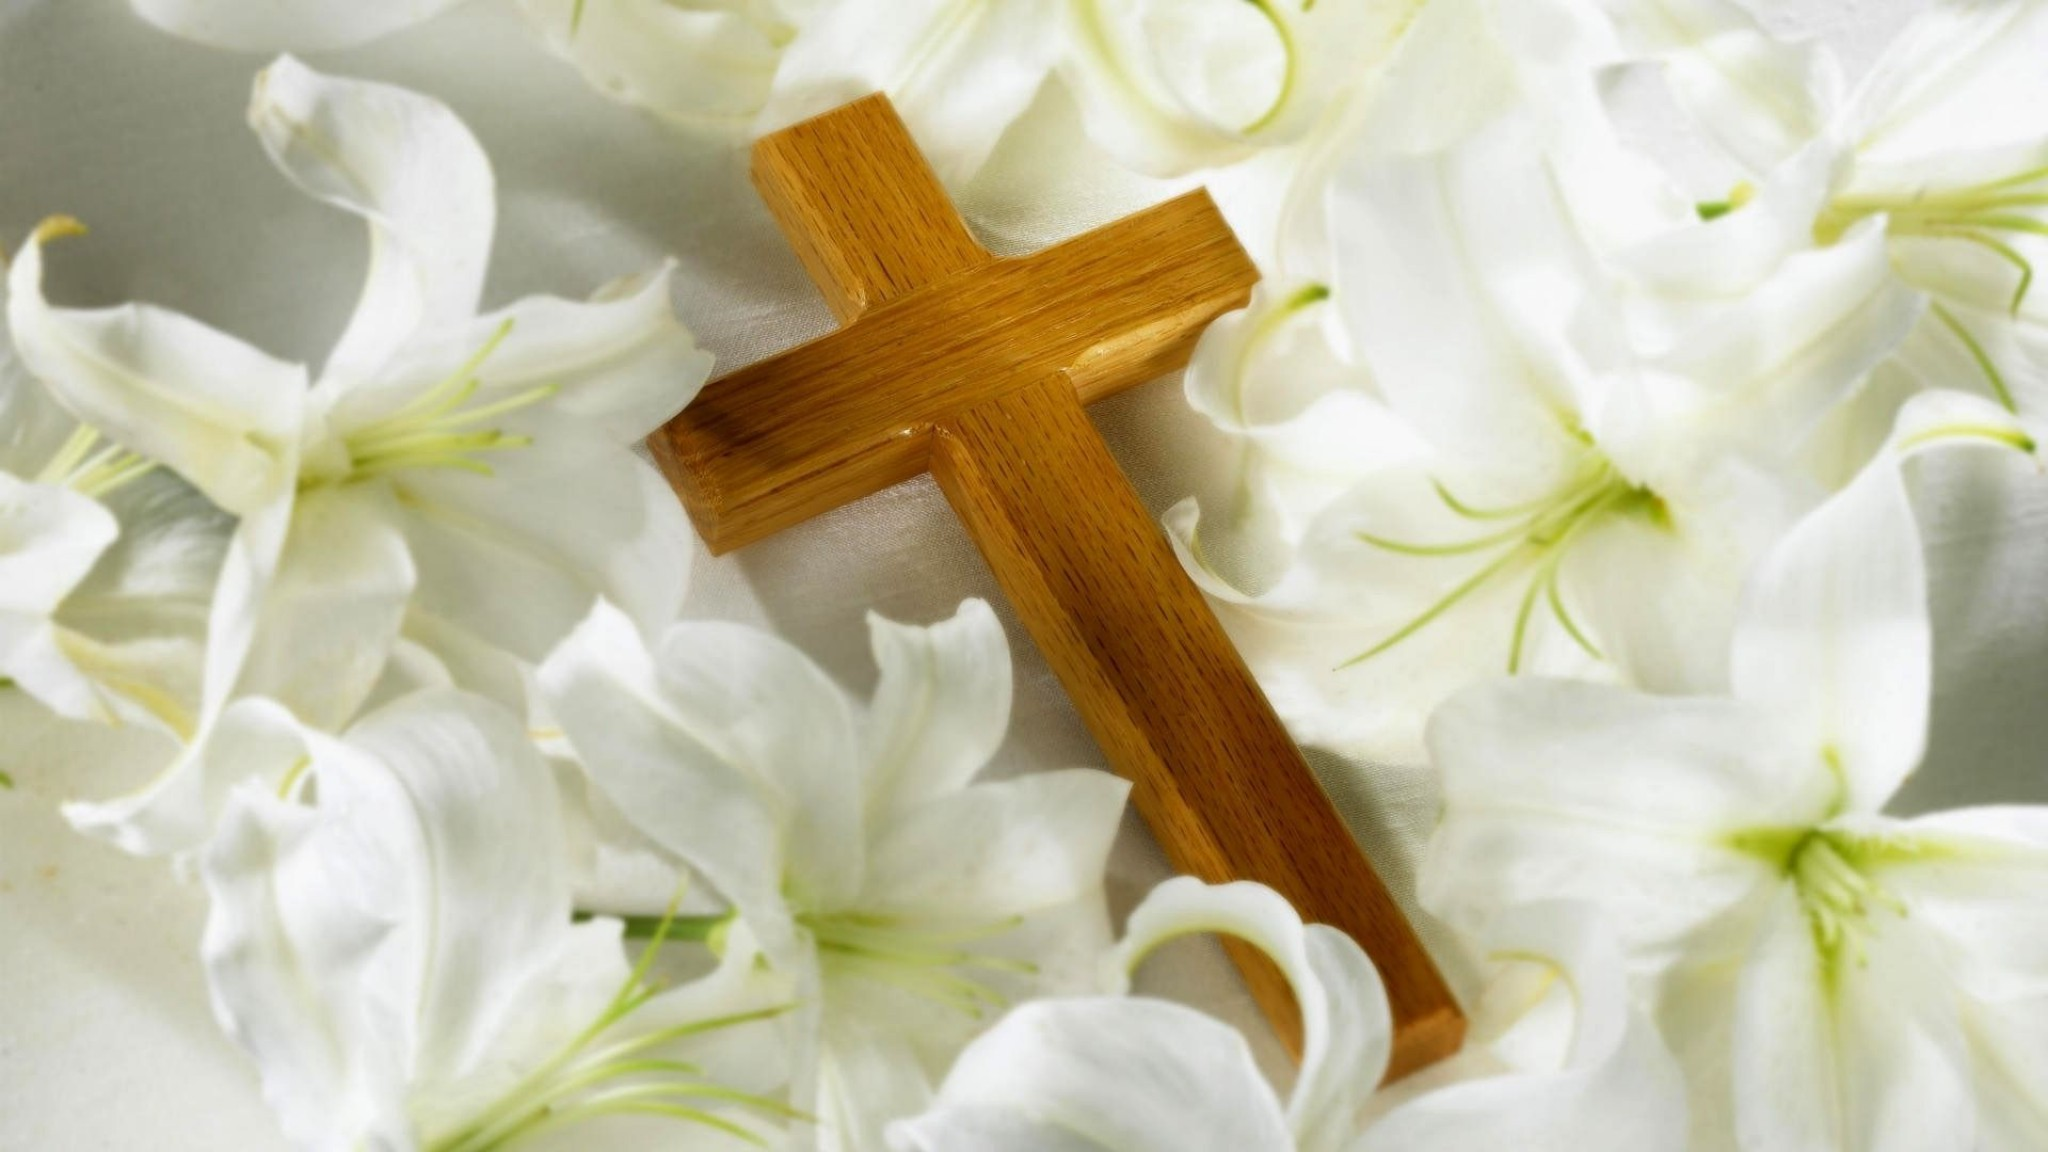 Wooden Cross Hd Wallpaper Background Image 2048x1152 Id270599